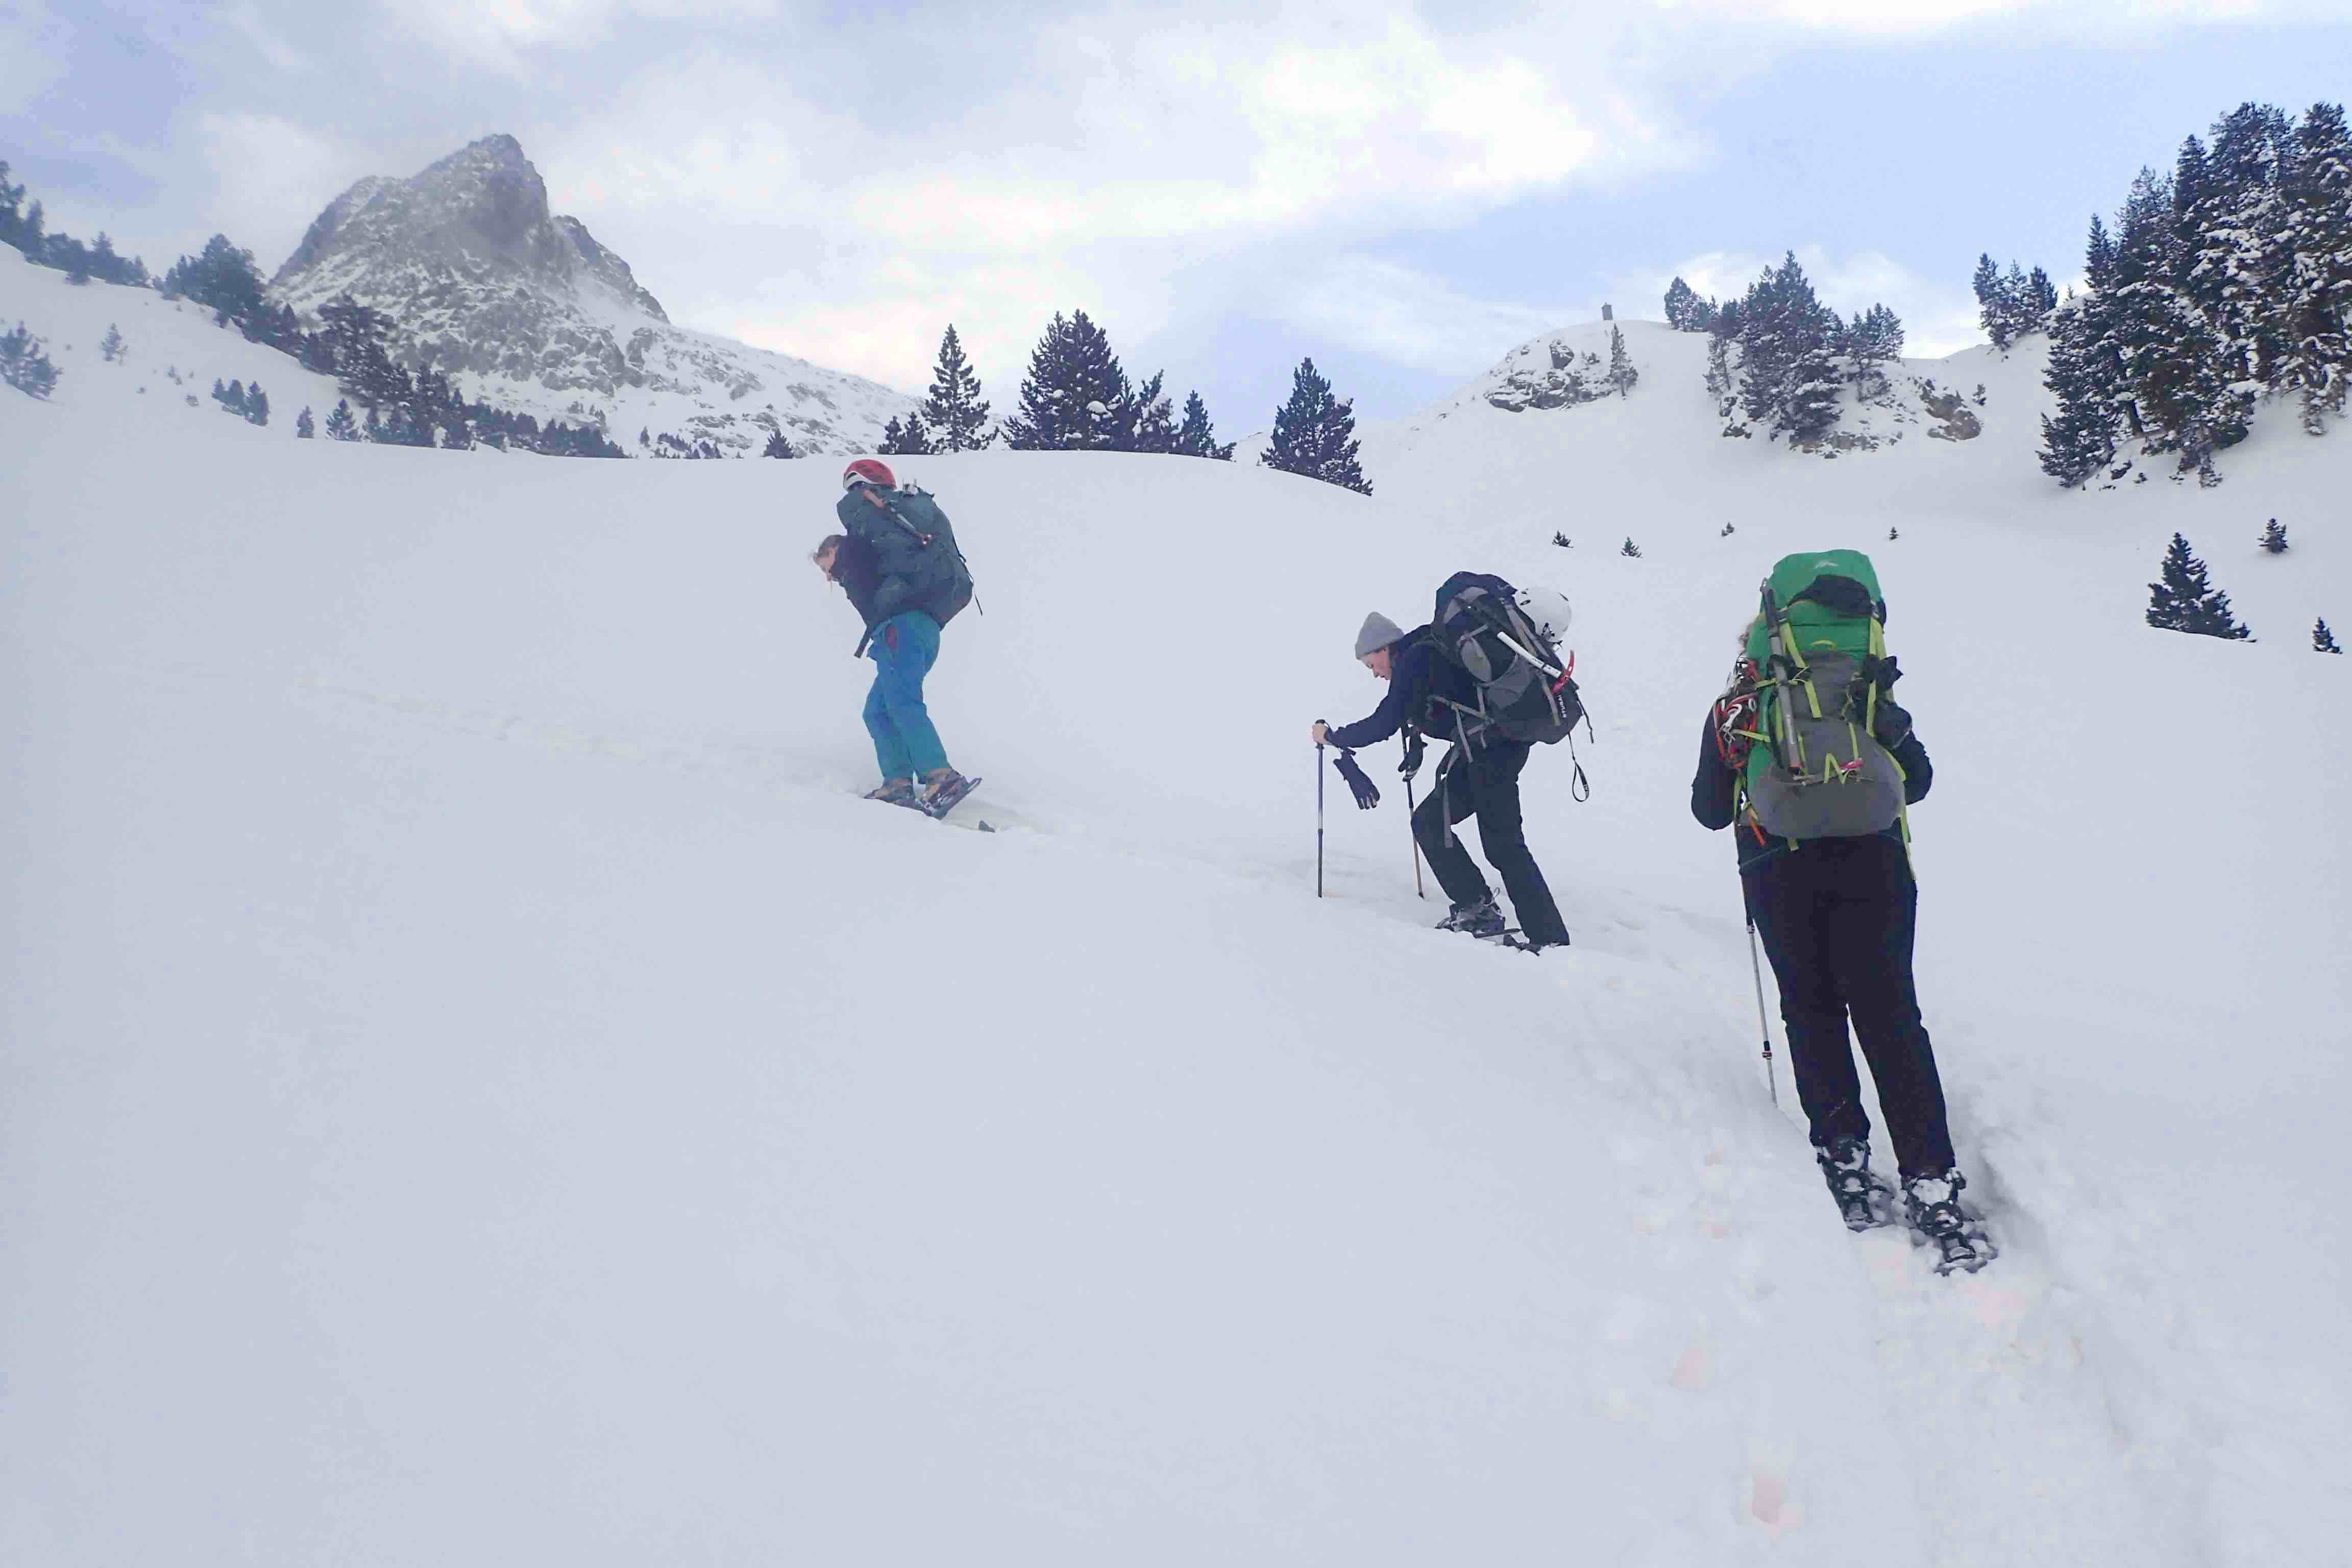 Snow shoeing Winter Skills course